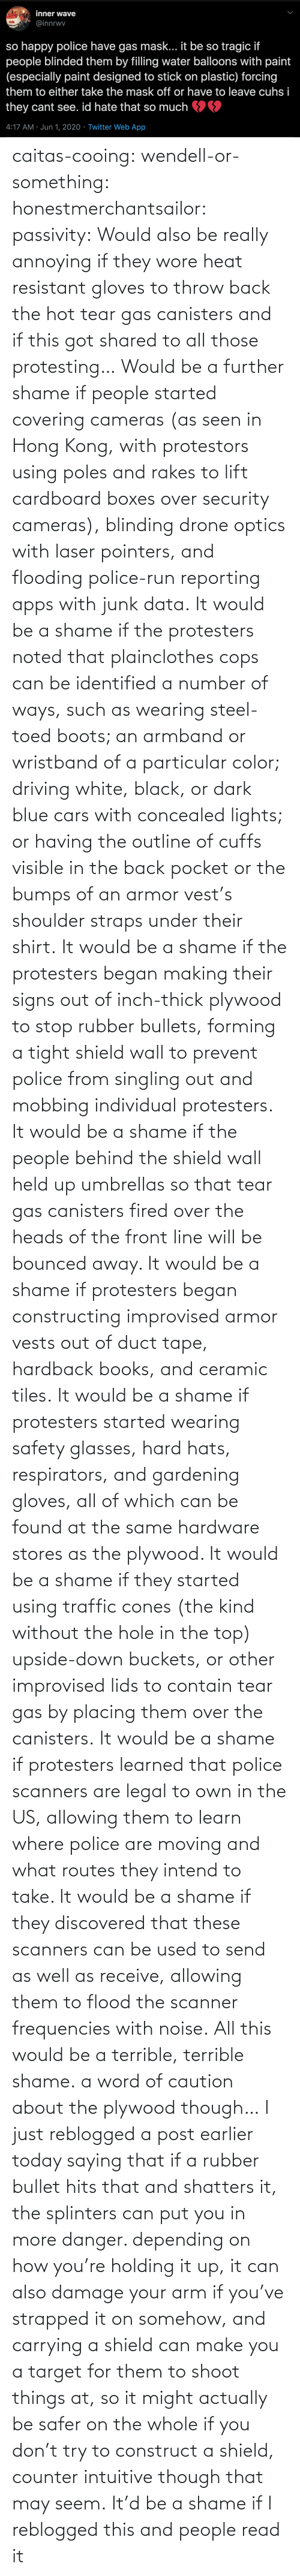 Ways: caitas-cooing:  wendell-or-something: honestmerchantsailor:  passivity: Would also be really annoying if they wore heat resistant gloves to throw back the hot tear gas canisters and if this got shared to all those protesting… Would be a further shame if people started covering cameras (as seen in Hong Kong, with protestors using poles and rakes to lift cardboard boxes over security cameras), blinding drone optics with laser pointers, and flooding police-run reporting apps with junk data. It would be a shame if the protesters noted that plainclothes cops can be identified a number of ways, such as wearing steel-toed boots; an armband or wristband of a particular color; driving white, black, or dark blue cars with concealed lights; or having the outline of cuffs visible in the back pocket or the bumps of an armor vest's shoulder straps under their shirt. It would be a shame if the protesters began making their signs out of inch-thick plywood to stop rubber bullets, forming a tight shield wall to prevent police from singling out and mobbing individual protesters. It would be a shame if the people behind the shield wall held up umbrellas so that tear gas canisters fired over the heads of the front line will be bounced away. It would be a shame if protesters began constructing improvised armor vests out of duct tape, hardback books, and ceramic tiles. It would be a shame if protesters started wearing safety glasses, hard hats, respirators, and gardening gloves, all of which can be found at the same hardware stores as the plywood. It would be a shame if they started using traffic cones (the kind without the hole in the top) upside-down buckets, or other improvised lids to contain tear gas by placing them over the canisters. It would be a shame if protesters learned that police scanners are legal to own in the US, allowing them to learn where police are moving and what routes they intend to take. It would be a shame if they discovered that these scanners can be used to send as well as receive, allowing them to flood the scanner frequencies with noise. All this would be a terrible, terrible shame.    a word of caution about the plywood though… I just reblogged a post earlier today saying that if a rubber bullet hits that and shatters it, the splinters can put you in more danger. depending on how you're holding it up, it can also damage your arm if you've strapped it on somehow, and carrying a shield can make you a target for them to shoot things at, so it might actually be safer on the whole if you don't try to construct a shield, counter intuitive though that may seem.    It'd be a shame if I reblogged this and people read it